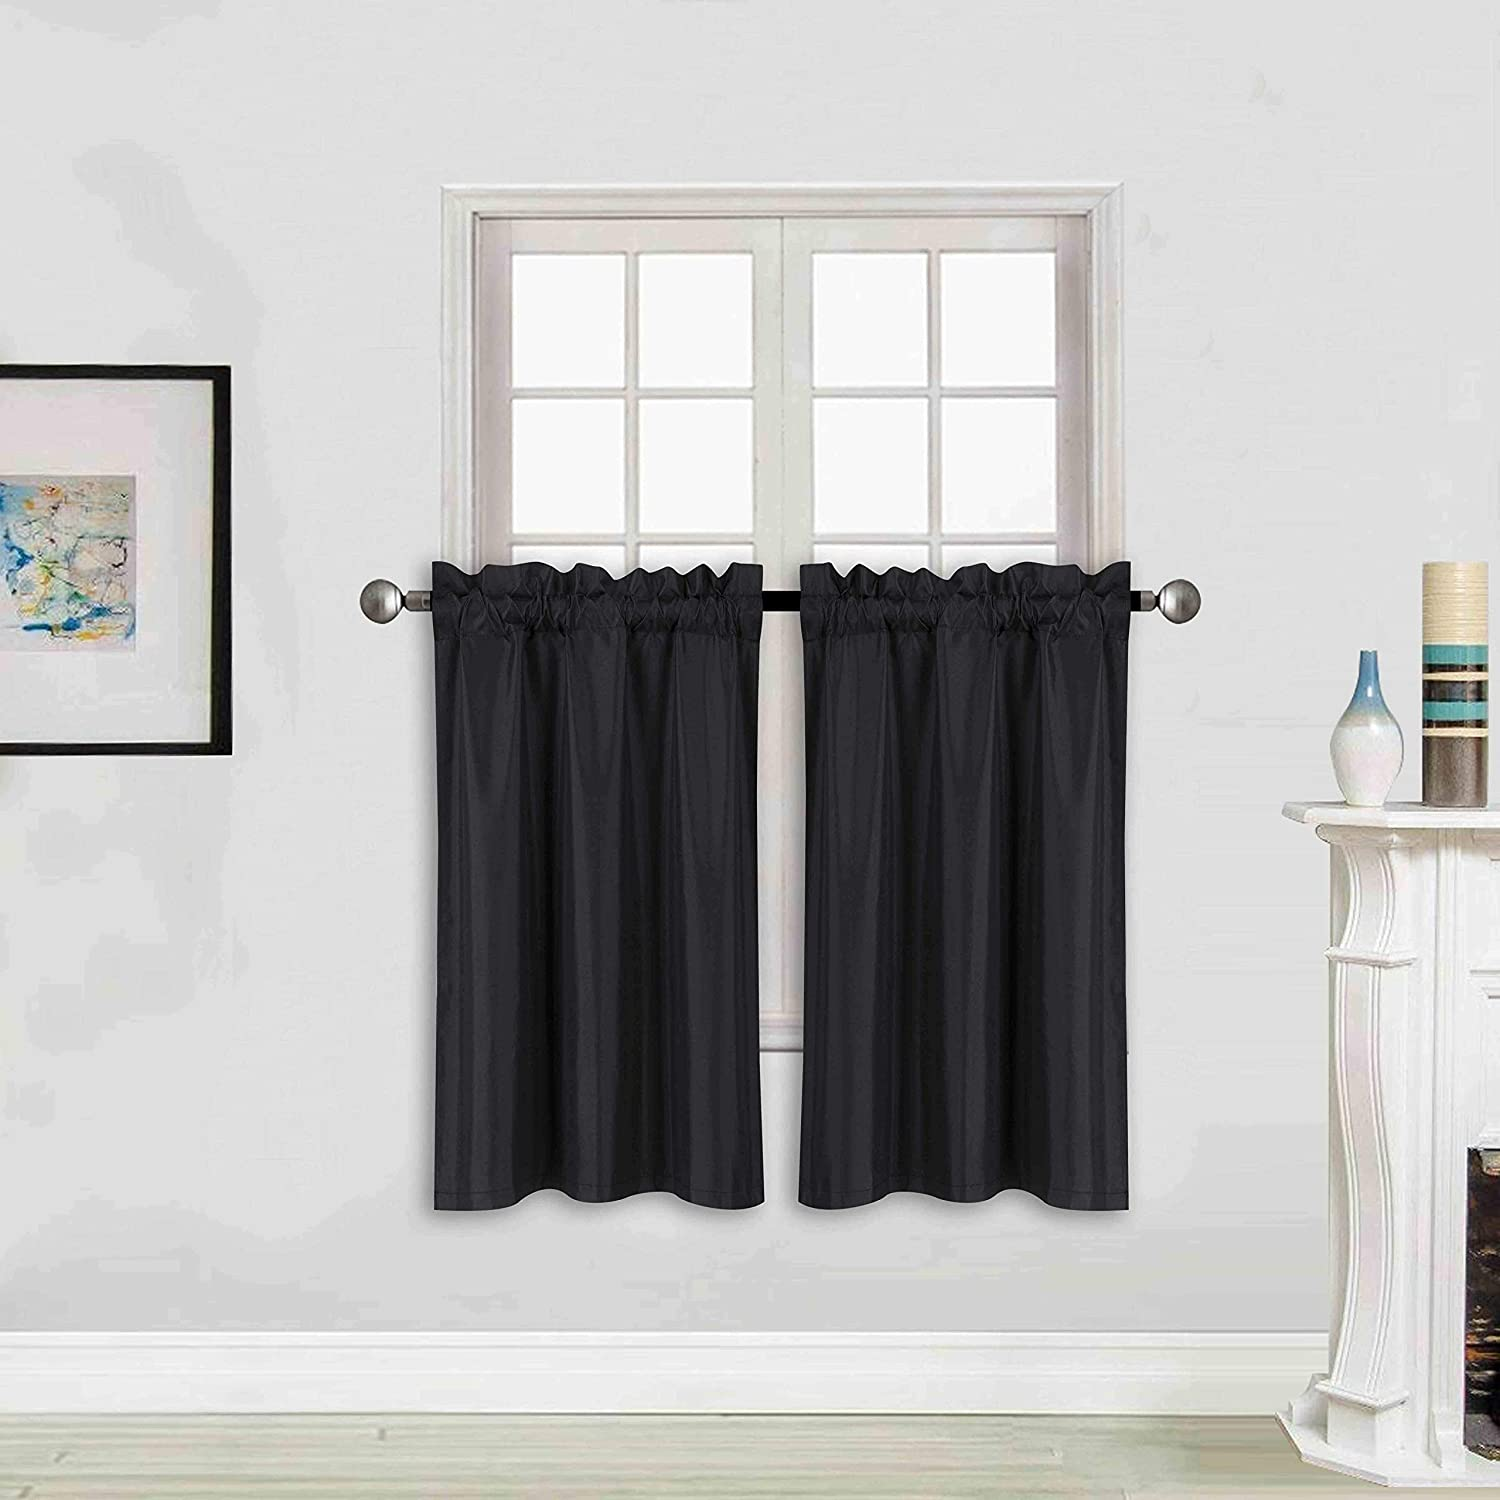 "Better Home Style 100% Blackout 2 Panels Tiers Window Treatment Curtain Insulated Drapes Short Panels for Kitchen Bathroom or Any Small Window M3024 (Black, 2 Panels 28"" W X 24"" L Each)"